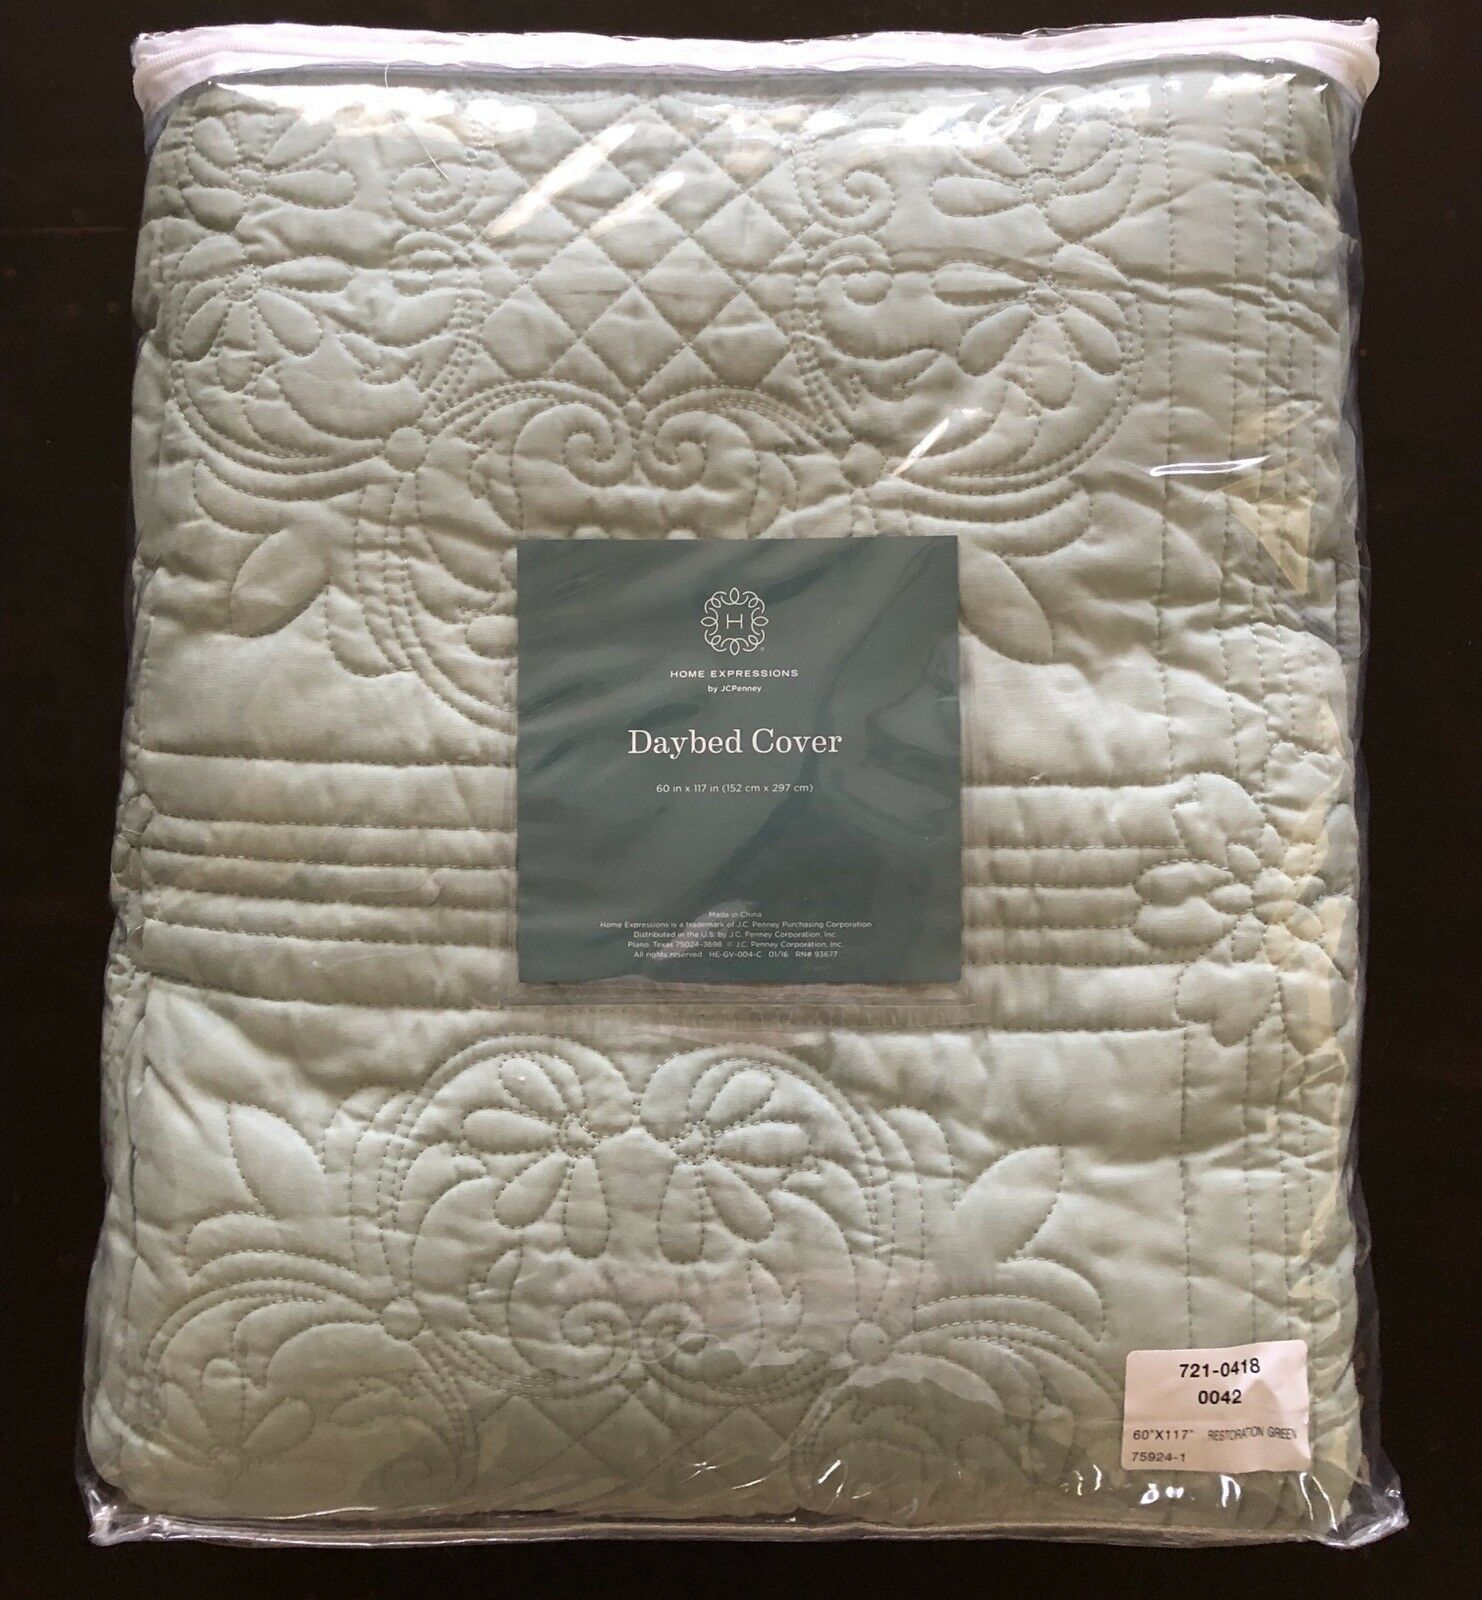 New Home-expressions Sage Green 60x 117 Daybed Cover   140.